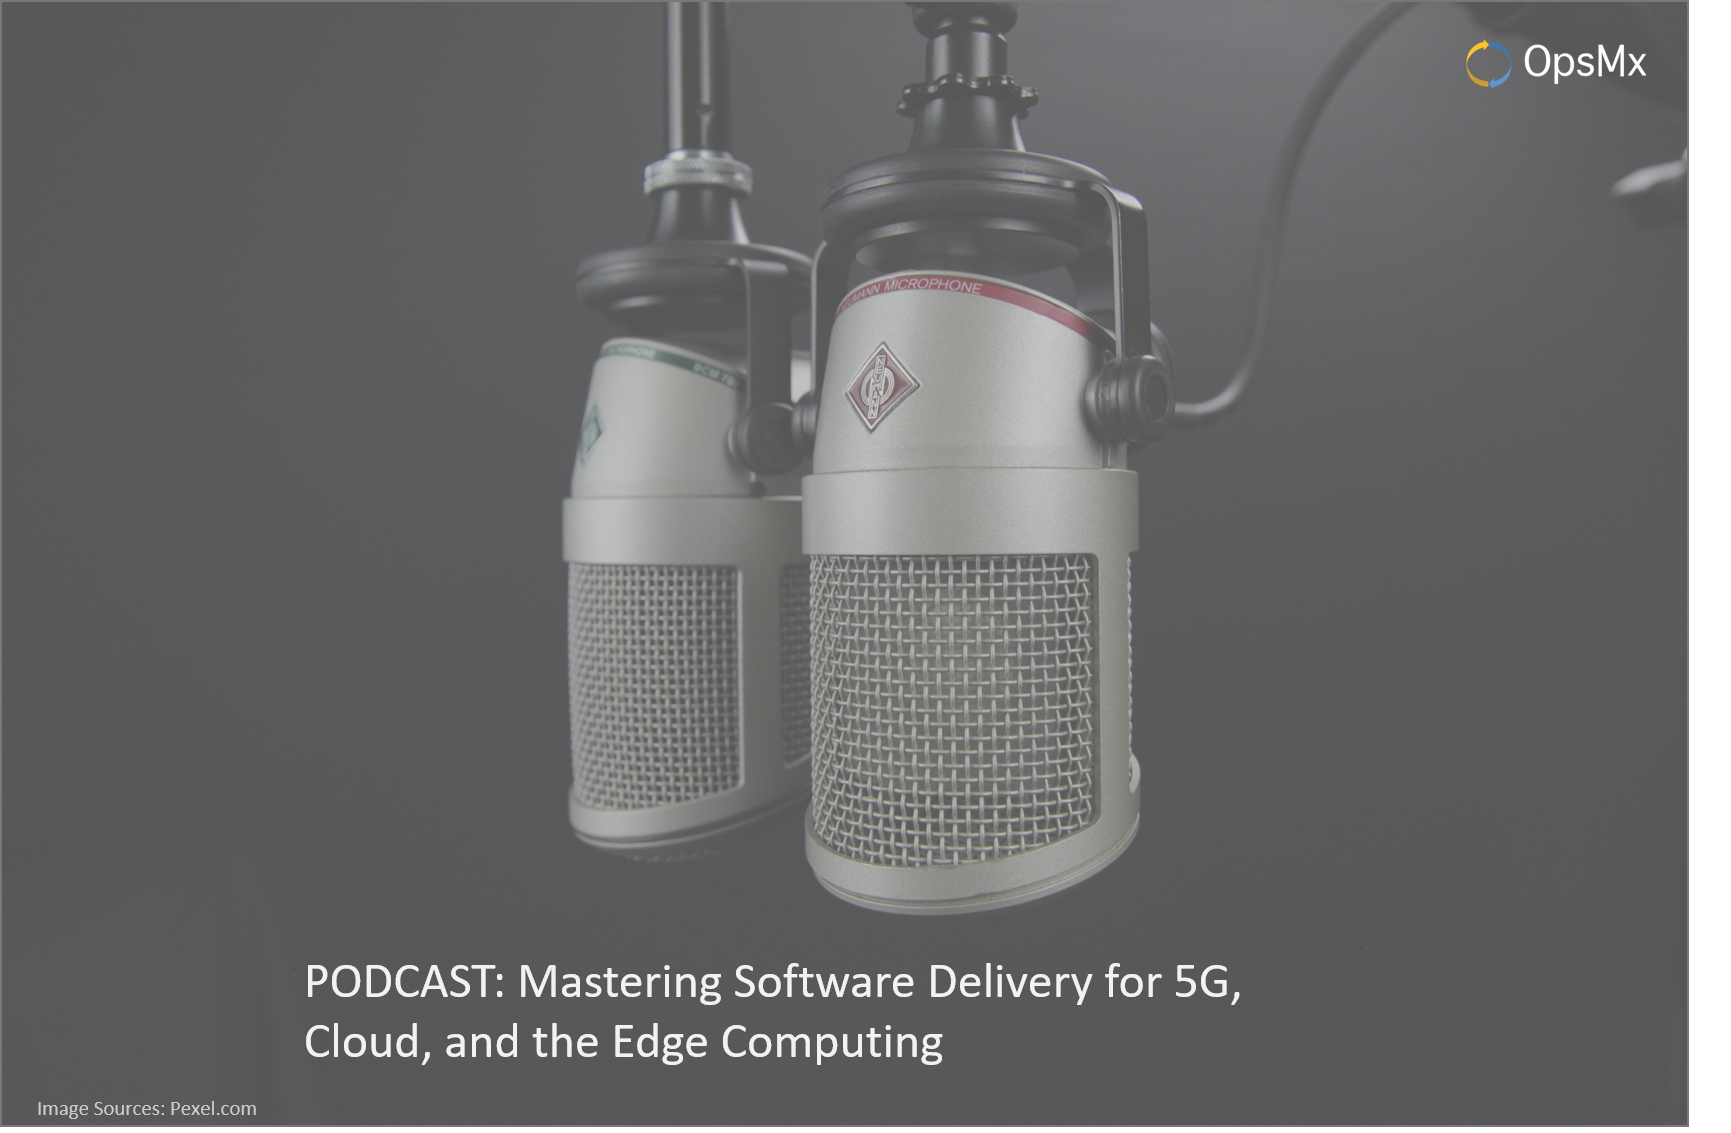 5G, Edge Computing and Application Delivery